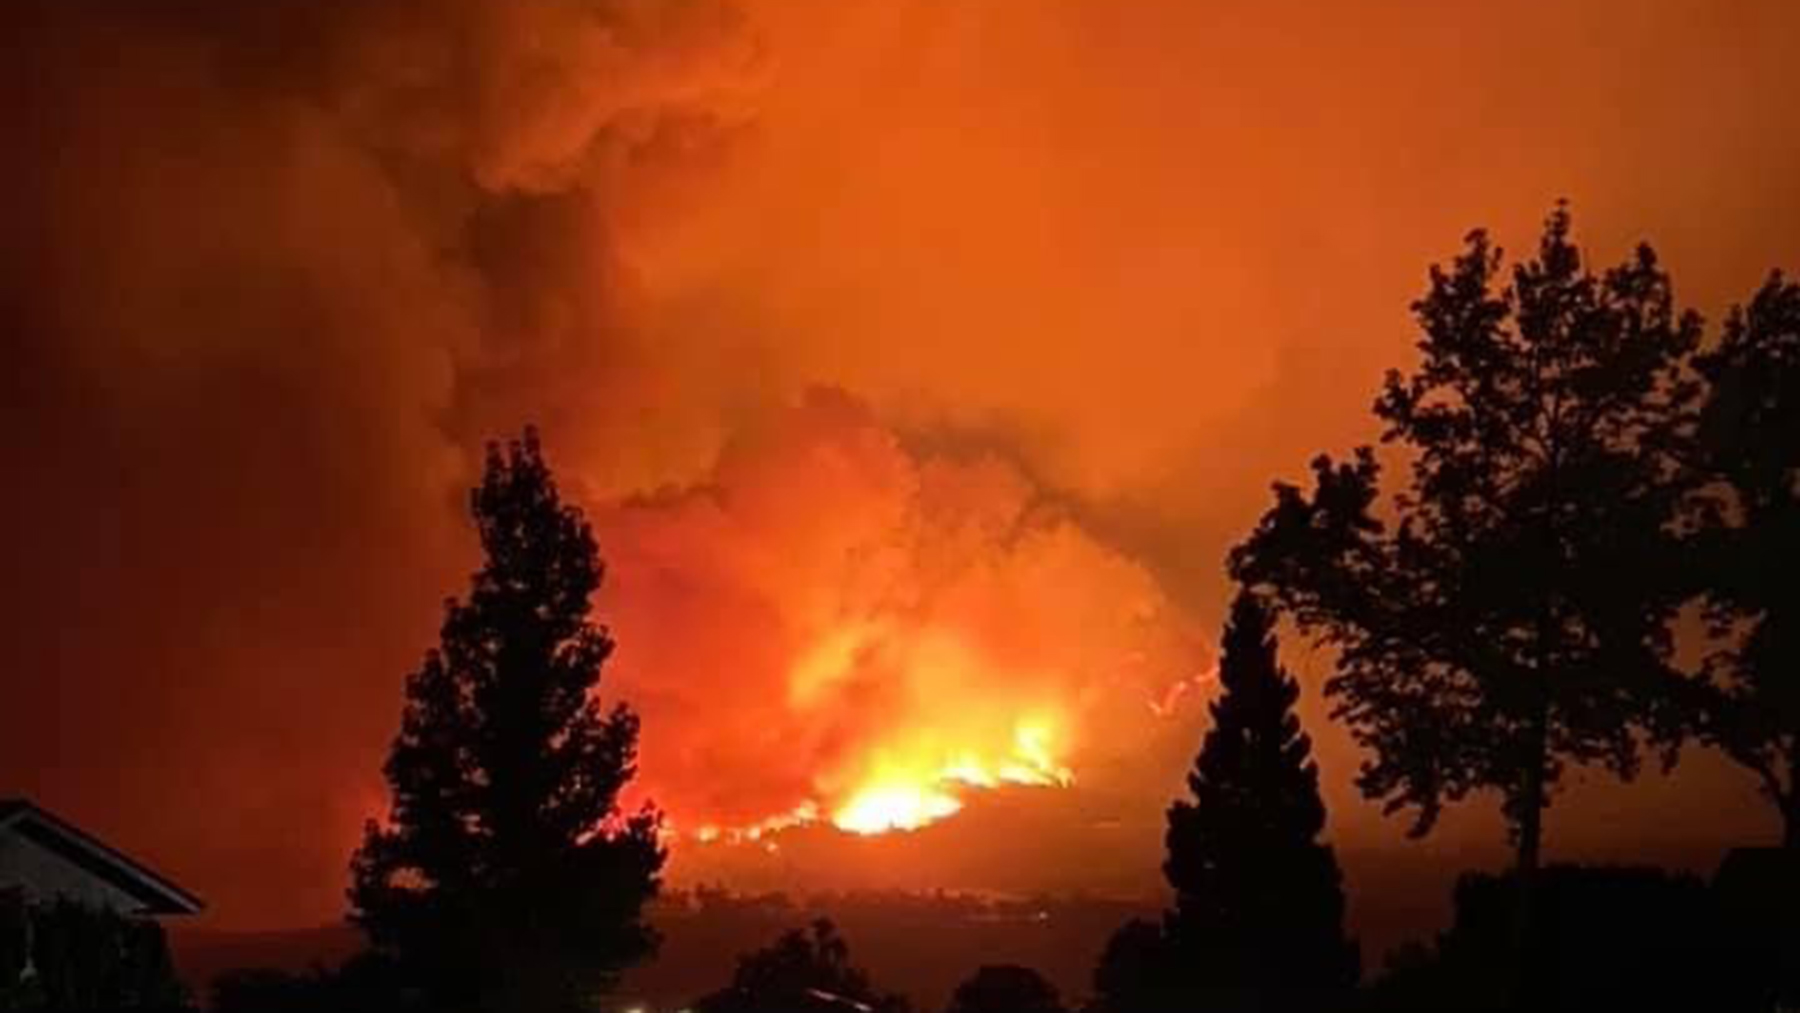 A view taken during an evacuation from Oroville, Butte County of the North Complex Fire. (Photo courtesy of Mykalyn Stahr)